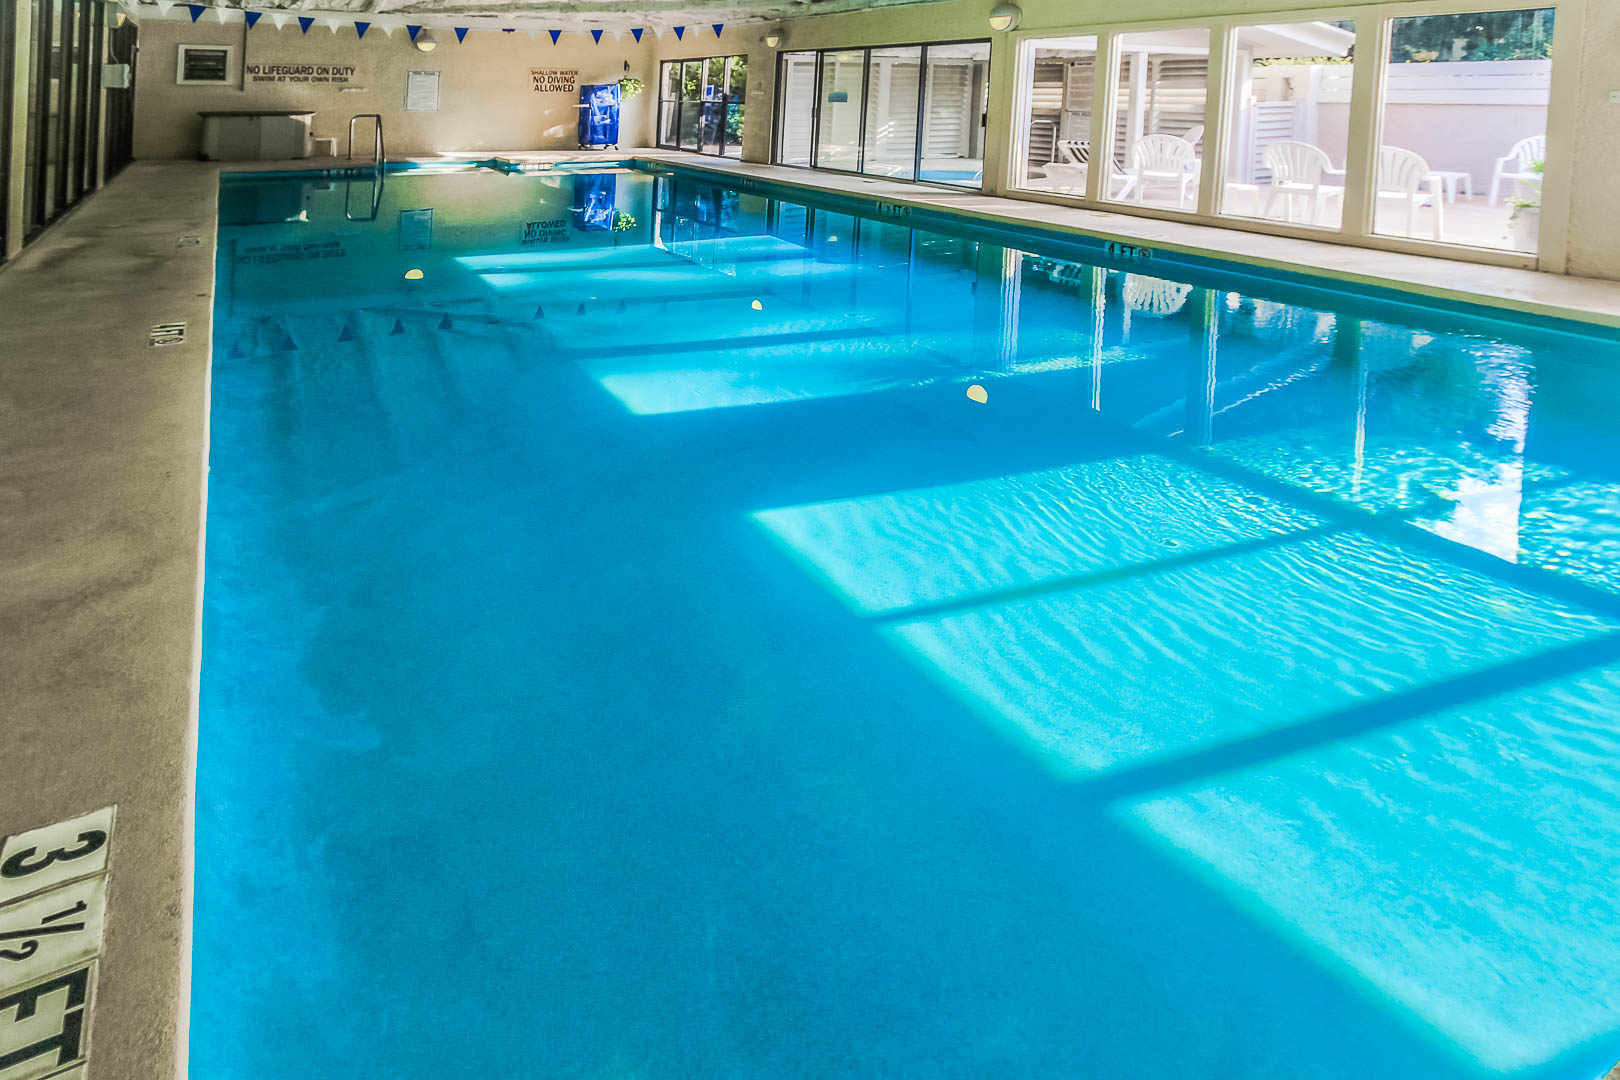 An expansive indoor swimming pool at VRI's Players Club Resort in Hilton Head Island, South Carolina.